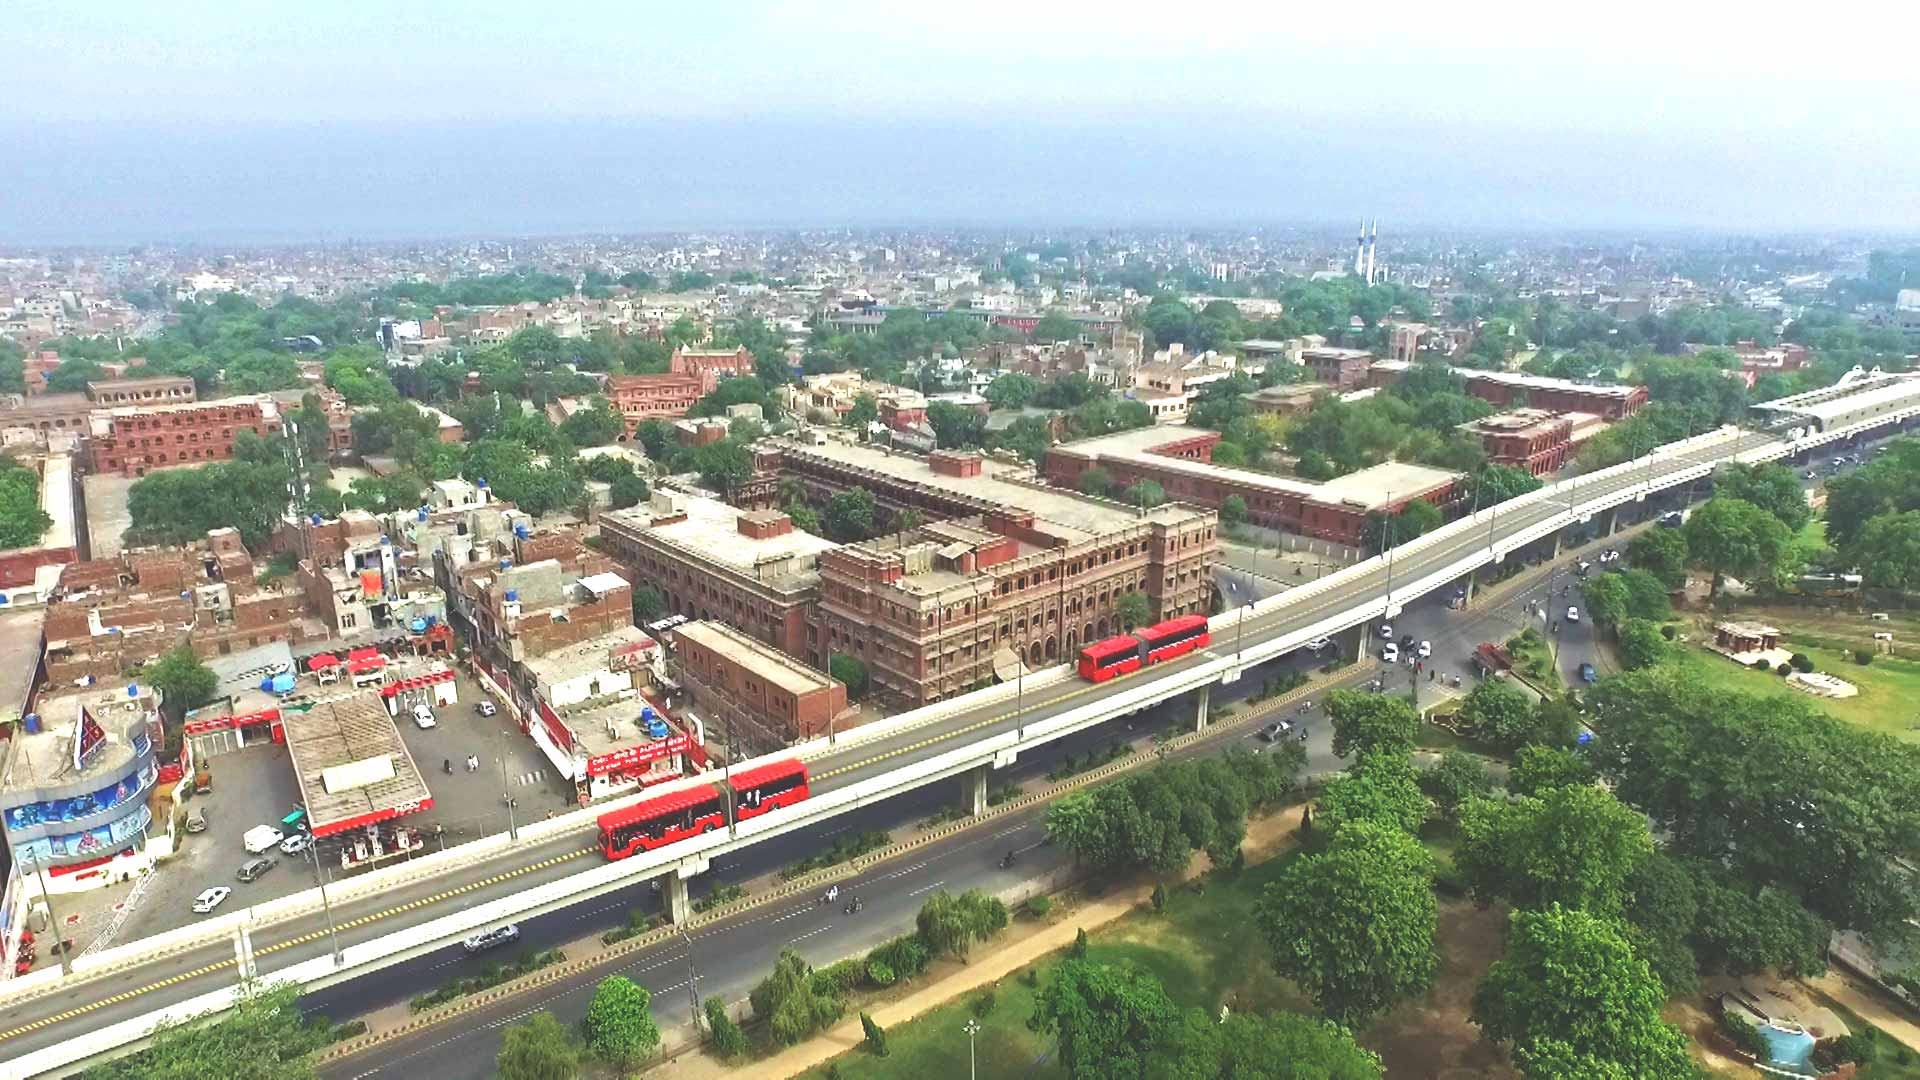 aerial-view-of-metro